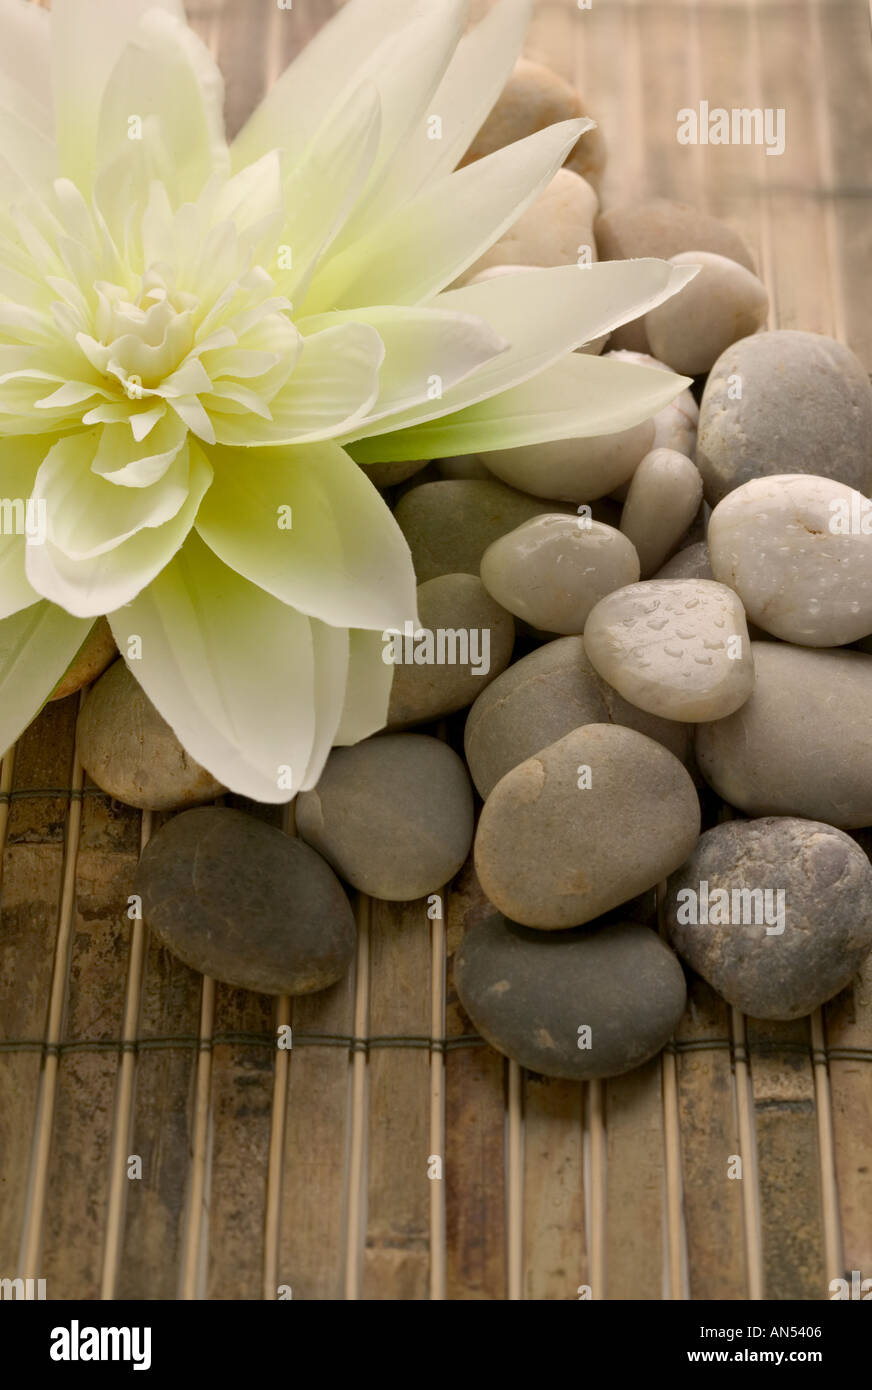 Stones and a lovely flower - Stock Image